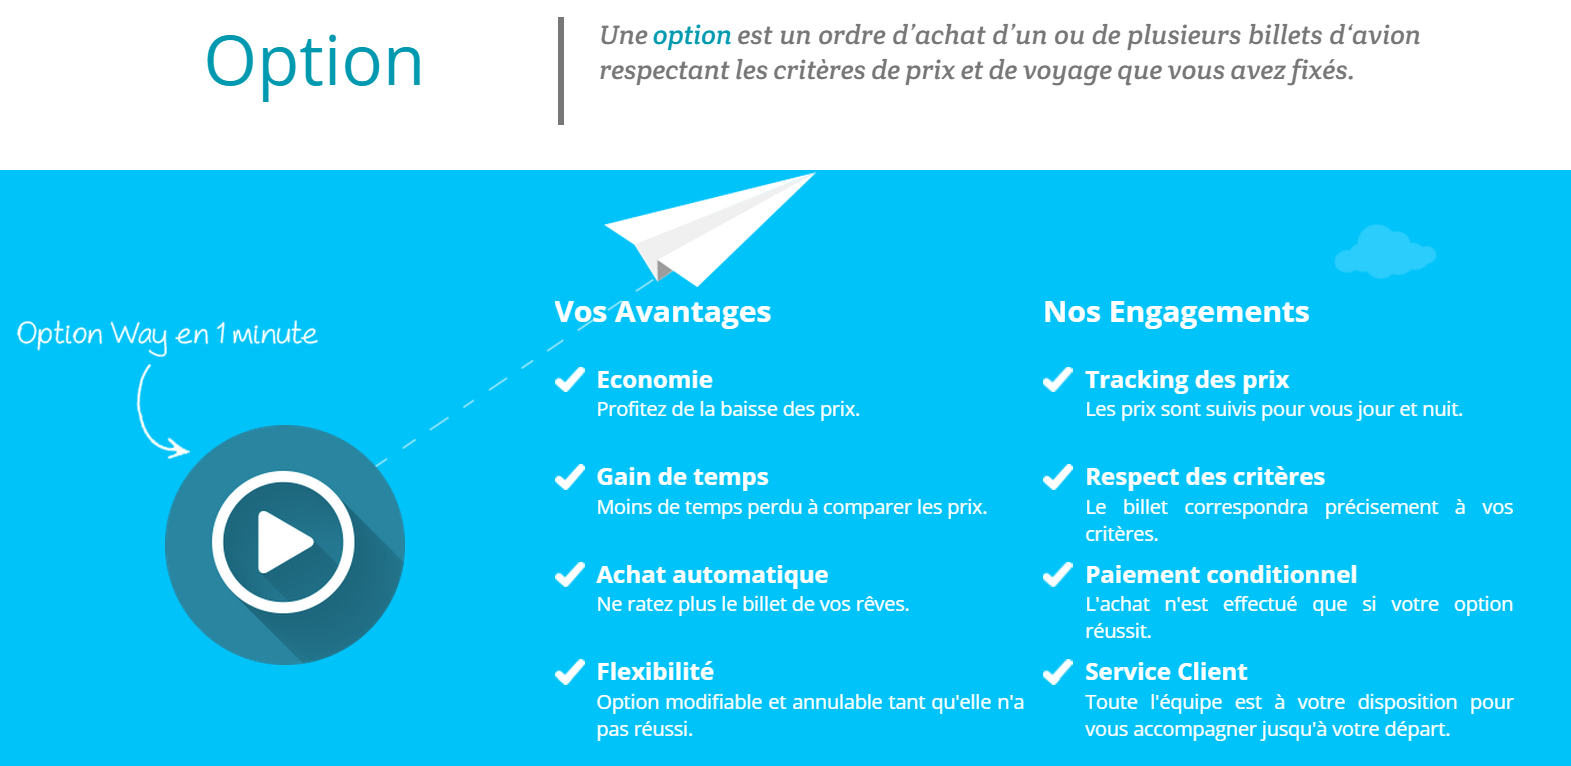 Option chez OptionWay